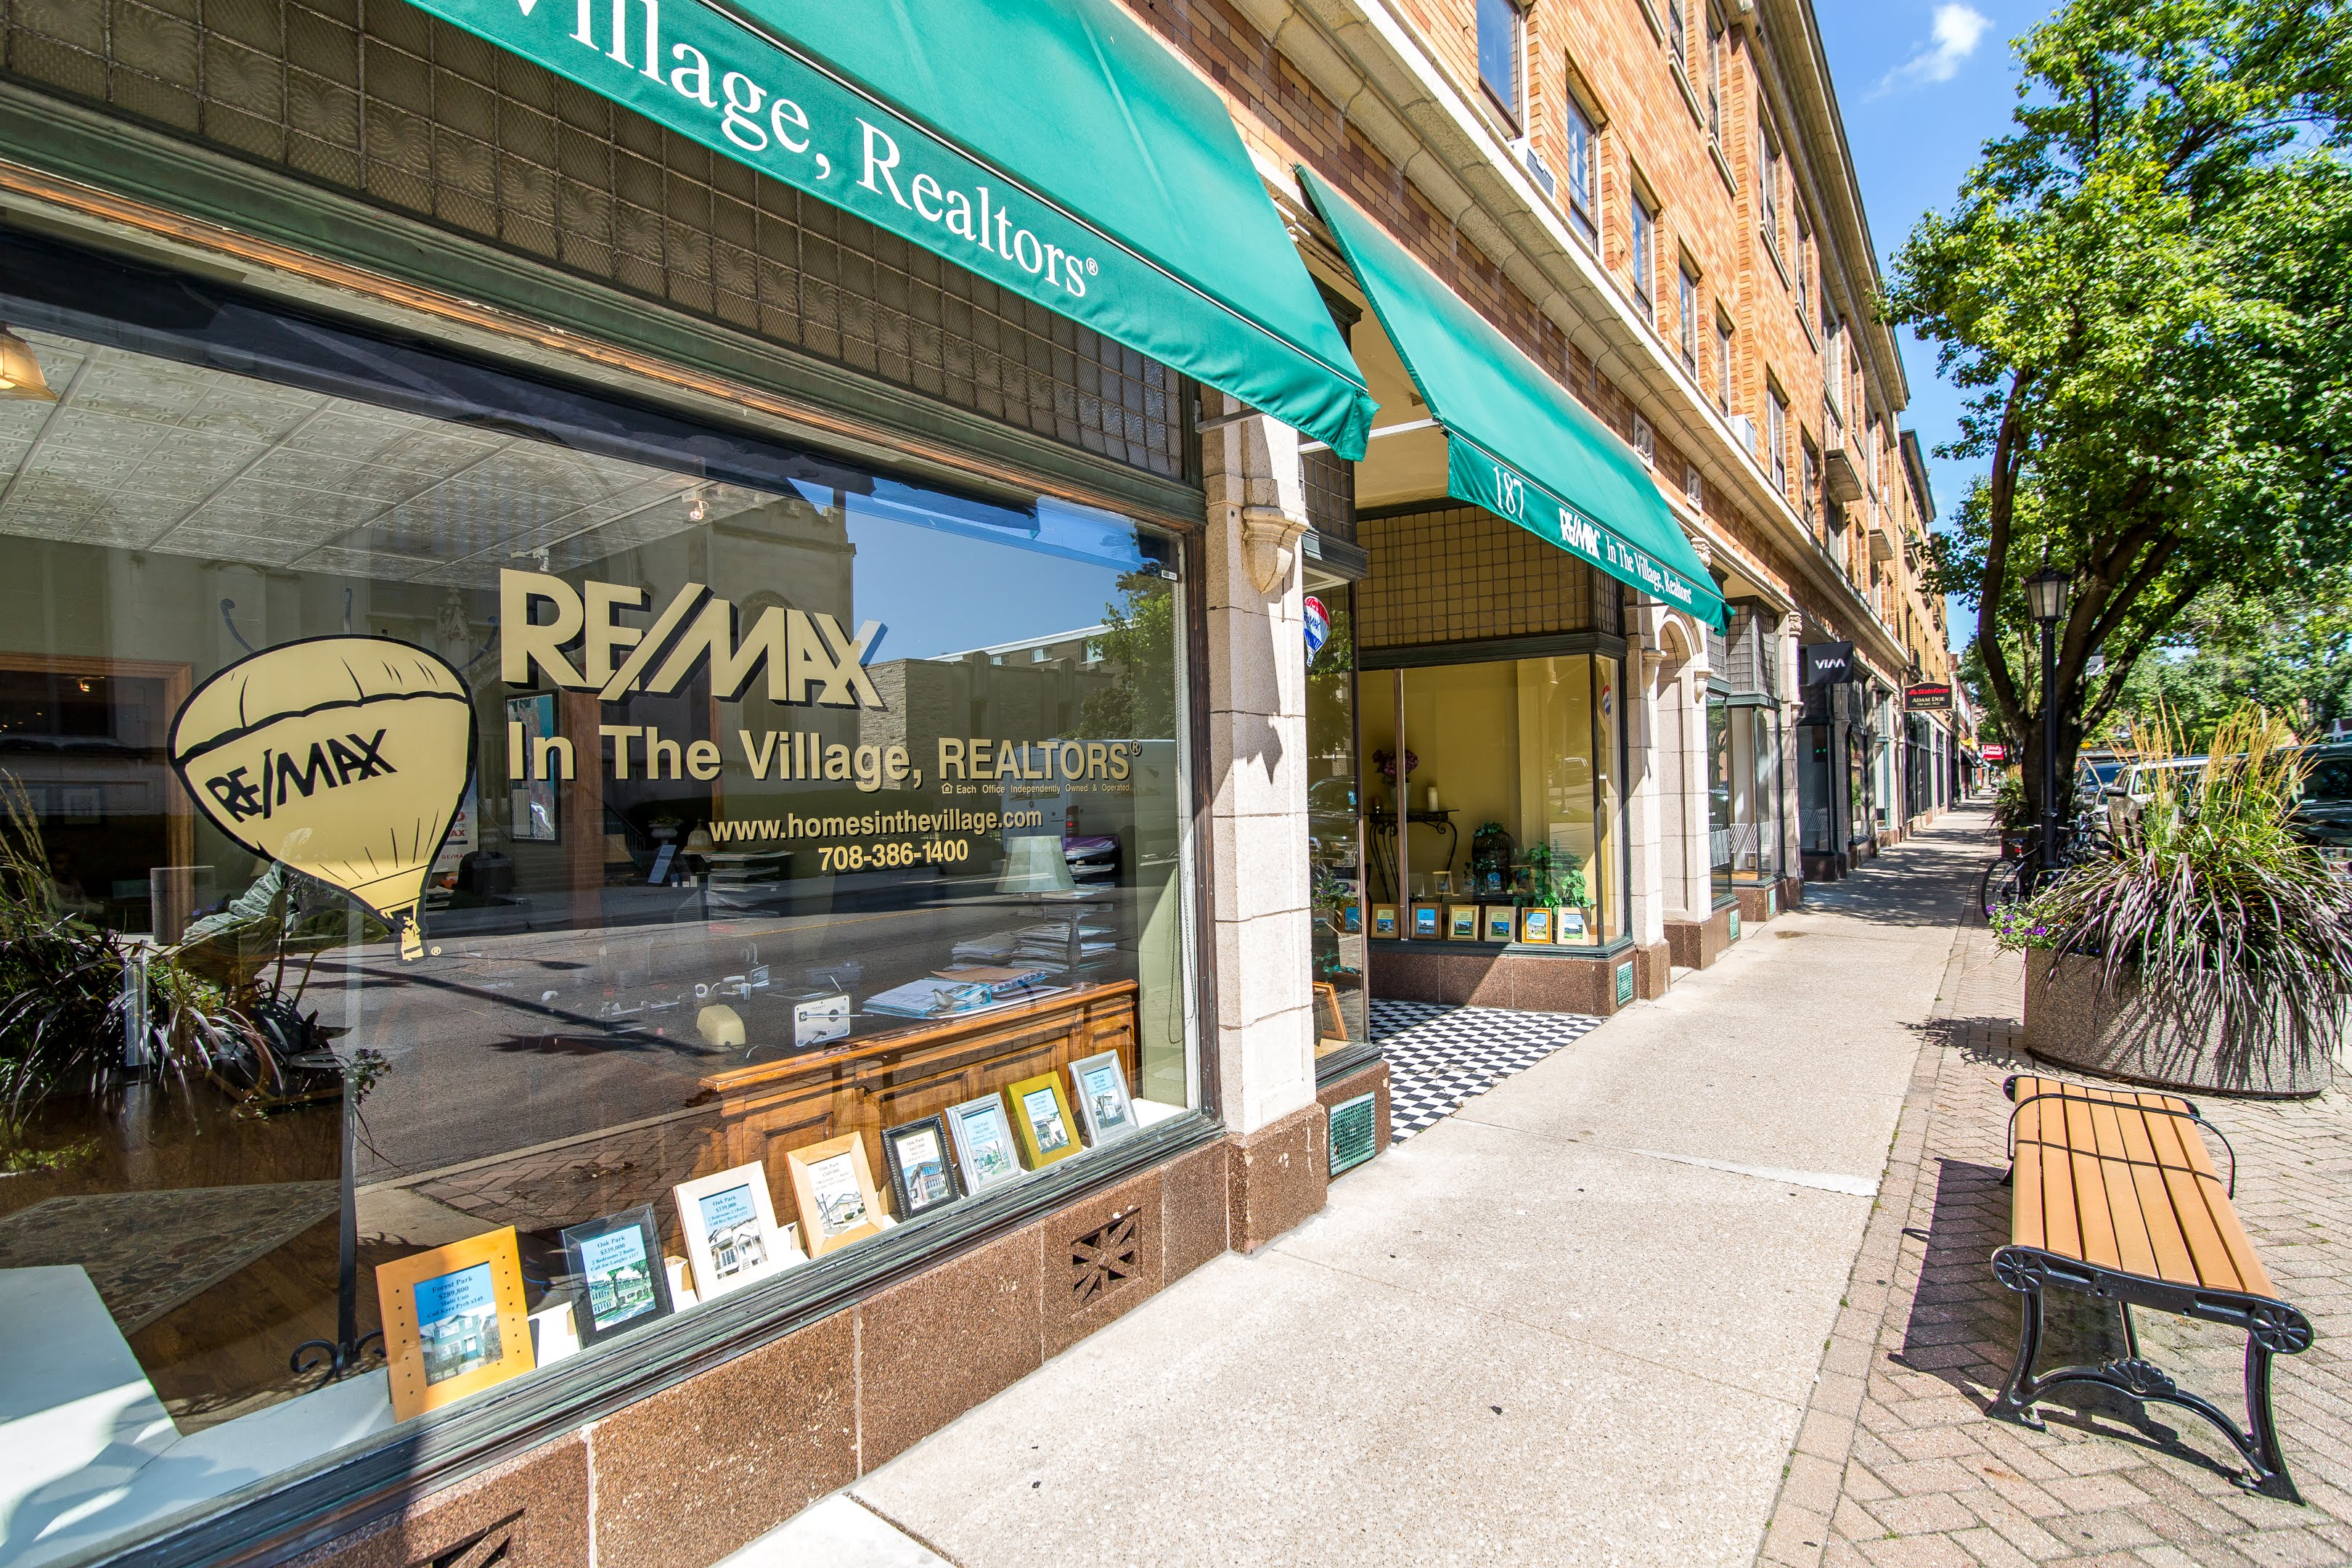 RE/MAX In the Village